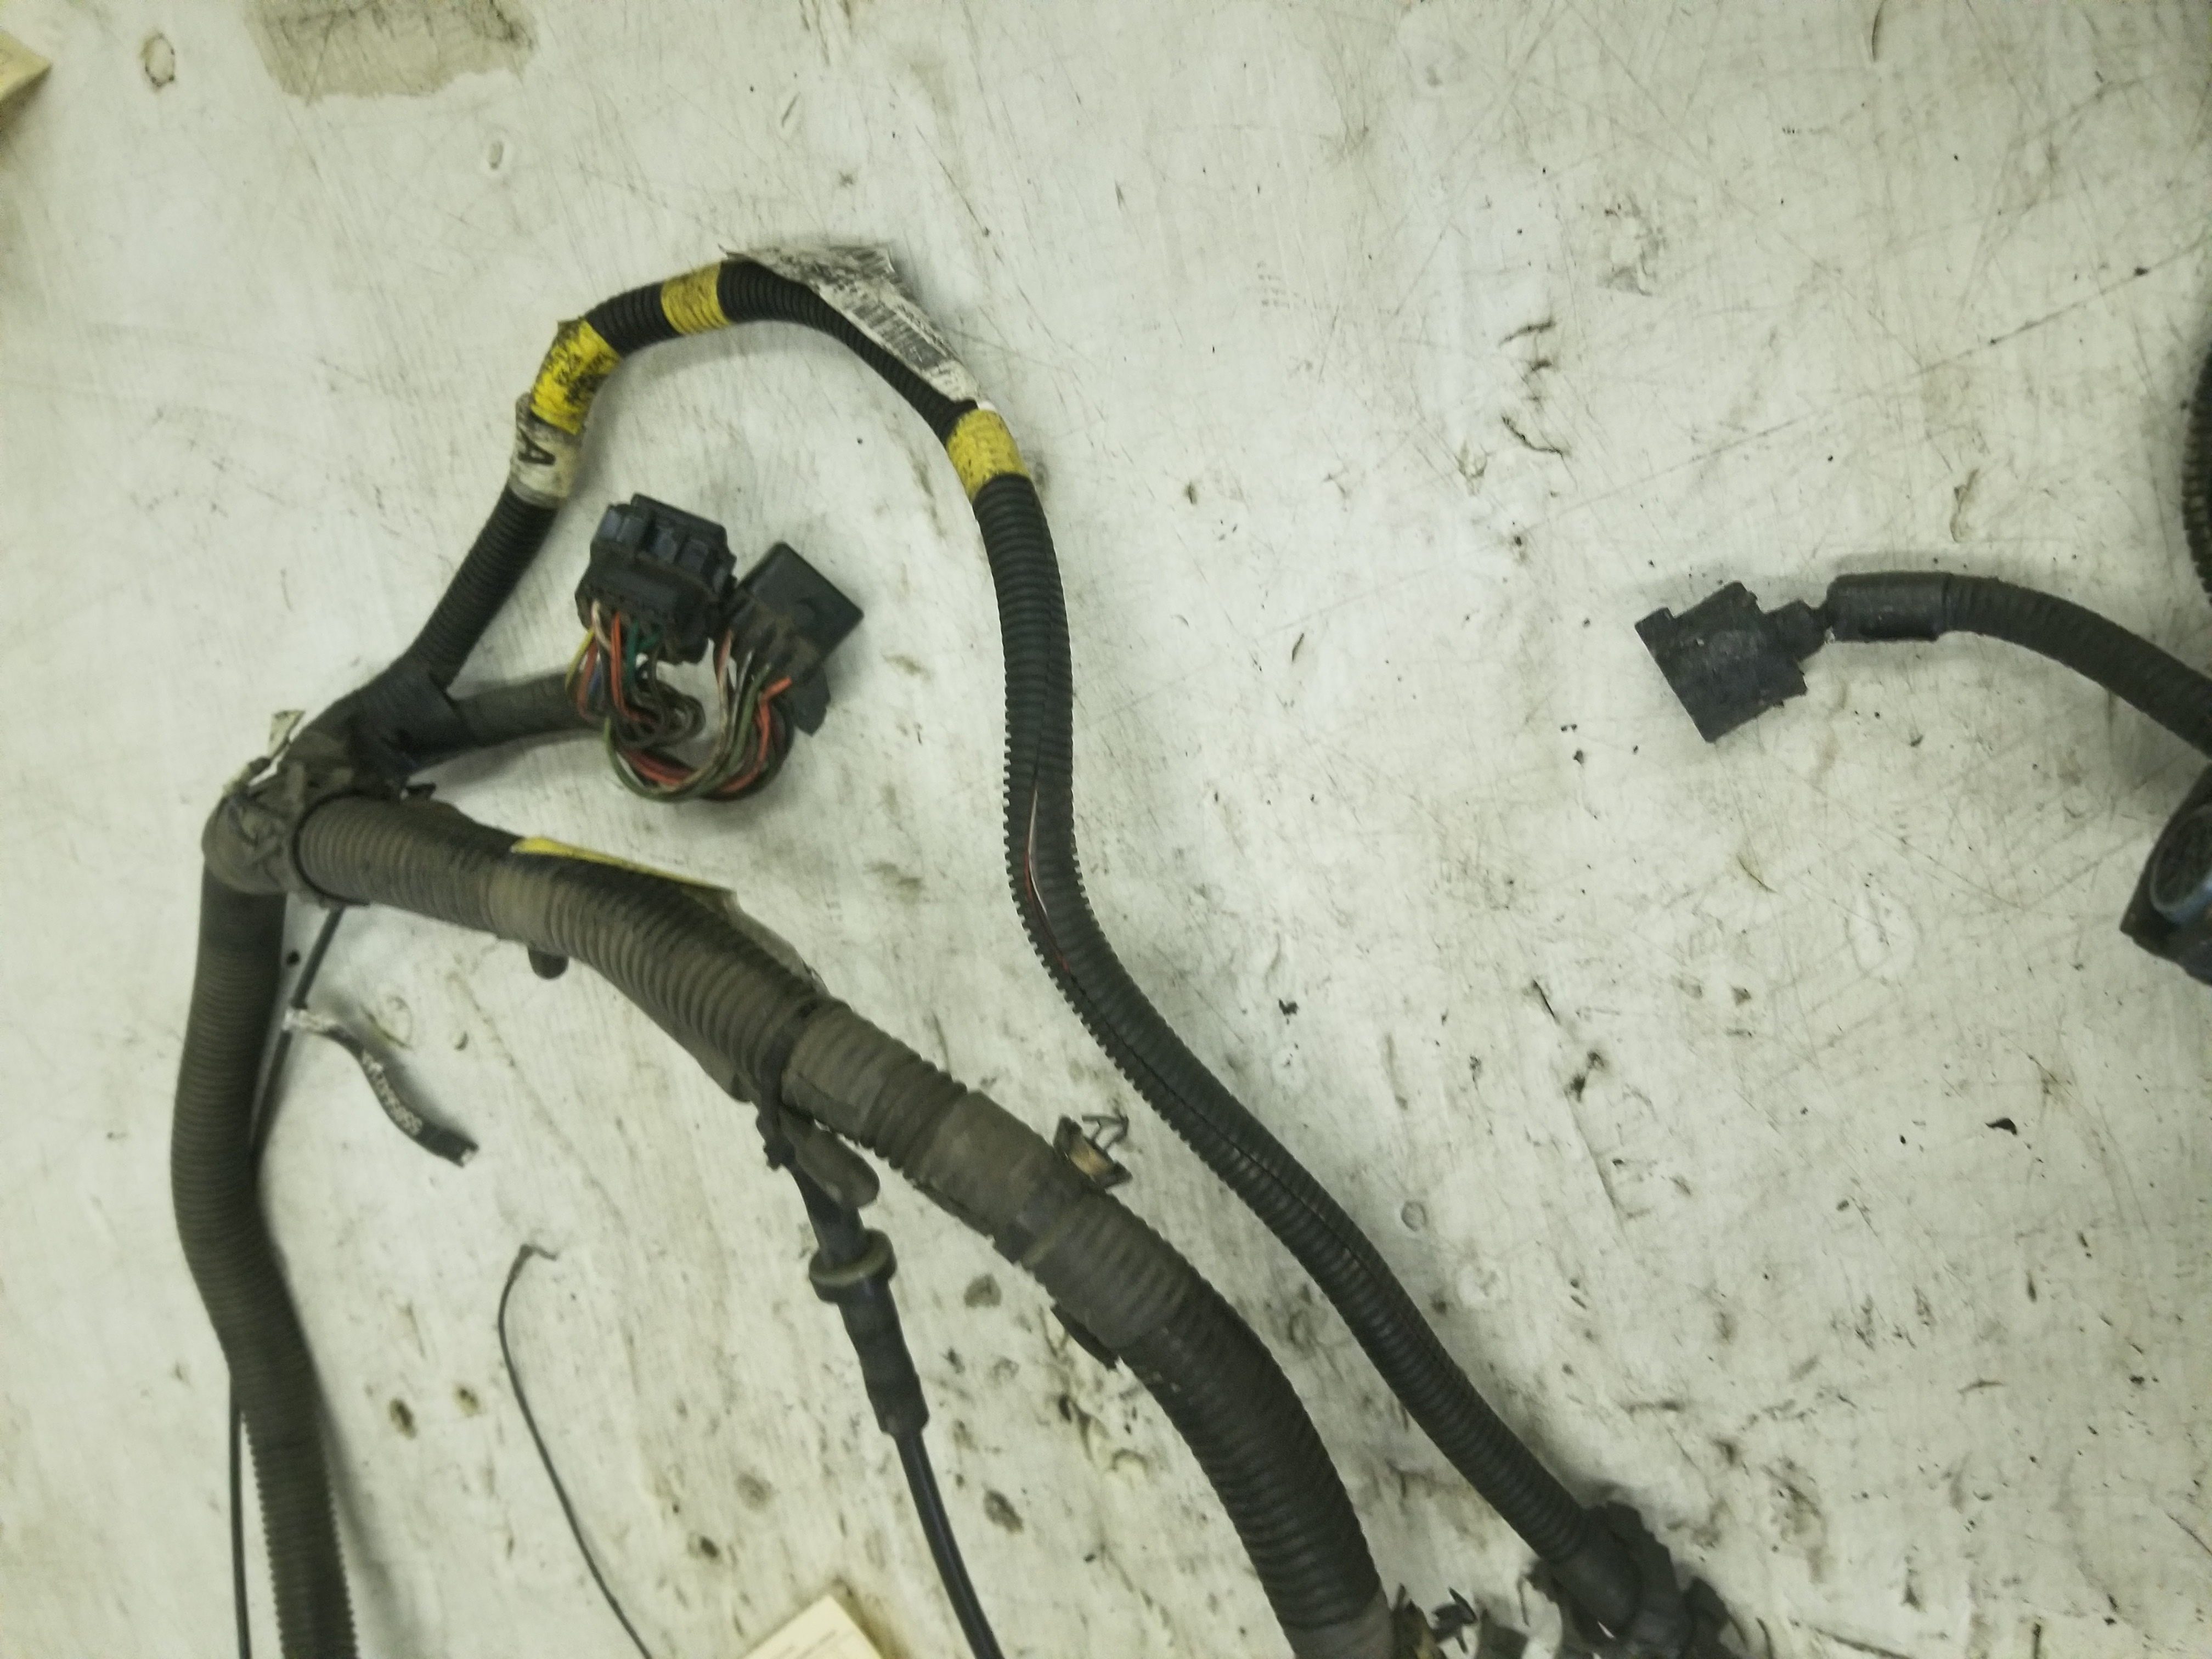 2002 Dodge Cummins 3500 59l Transmission Wiring Harness For Ram Parting Out The Complete Truck So If You Are Looking Anything Else Or Have Any Questions Please Feel Free To Send Me A Message Through Ebay